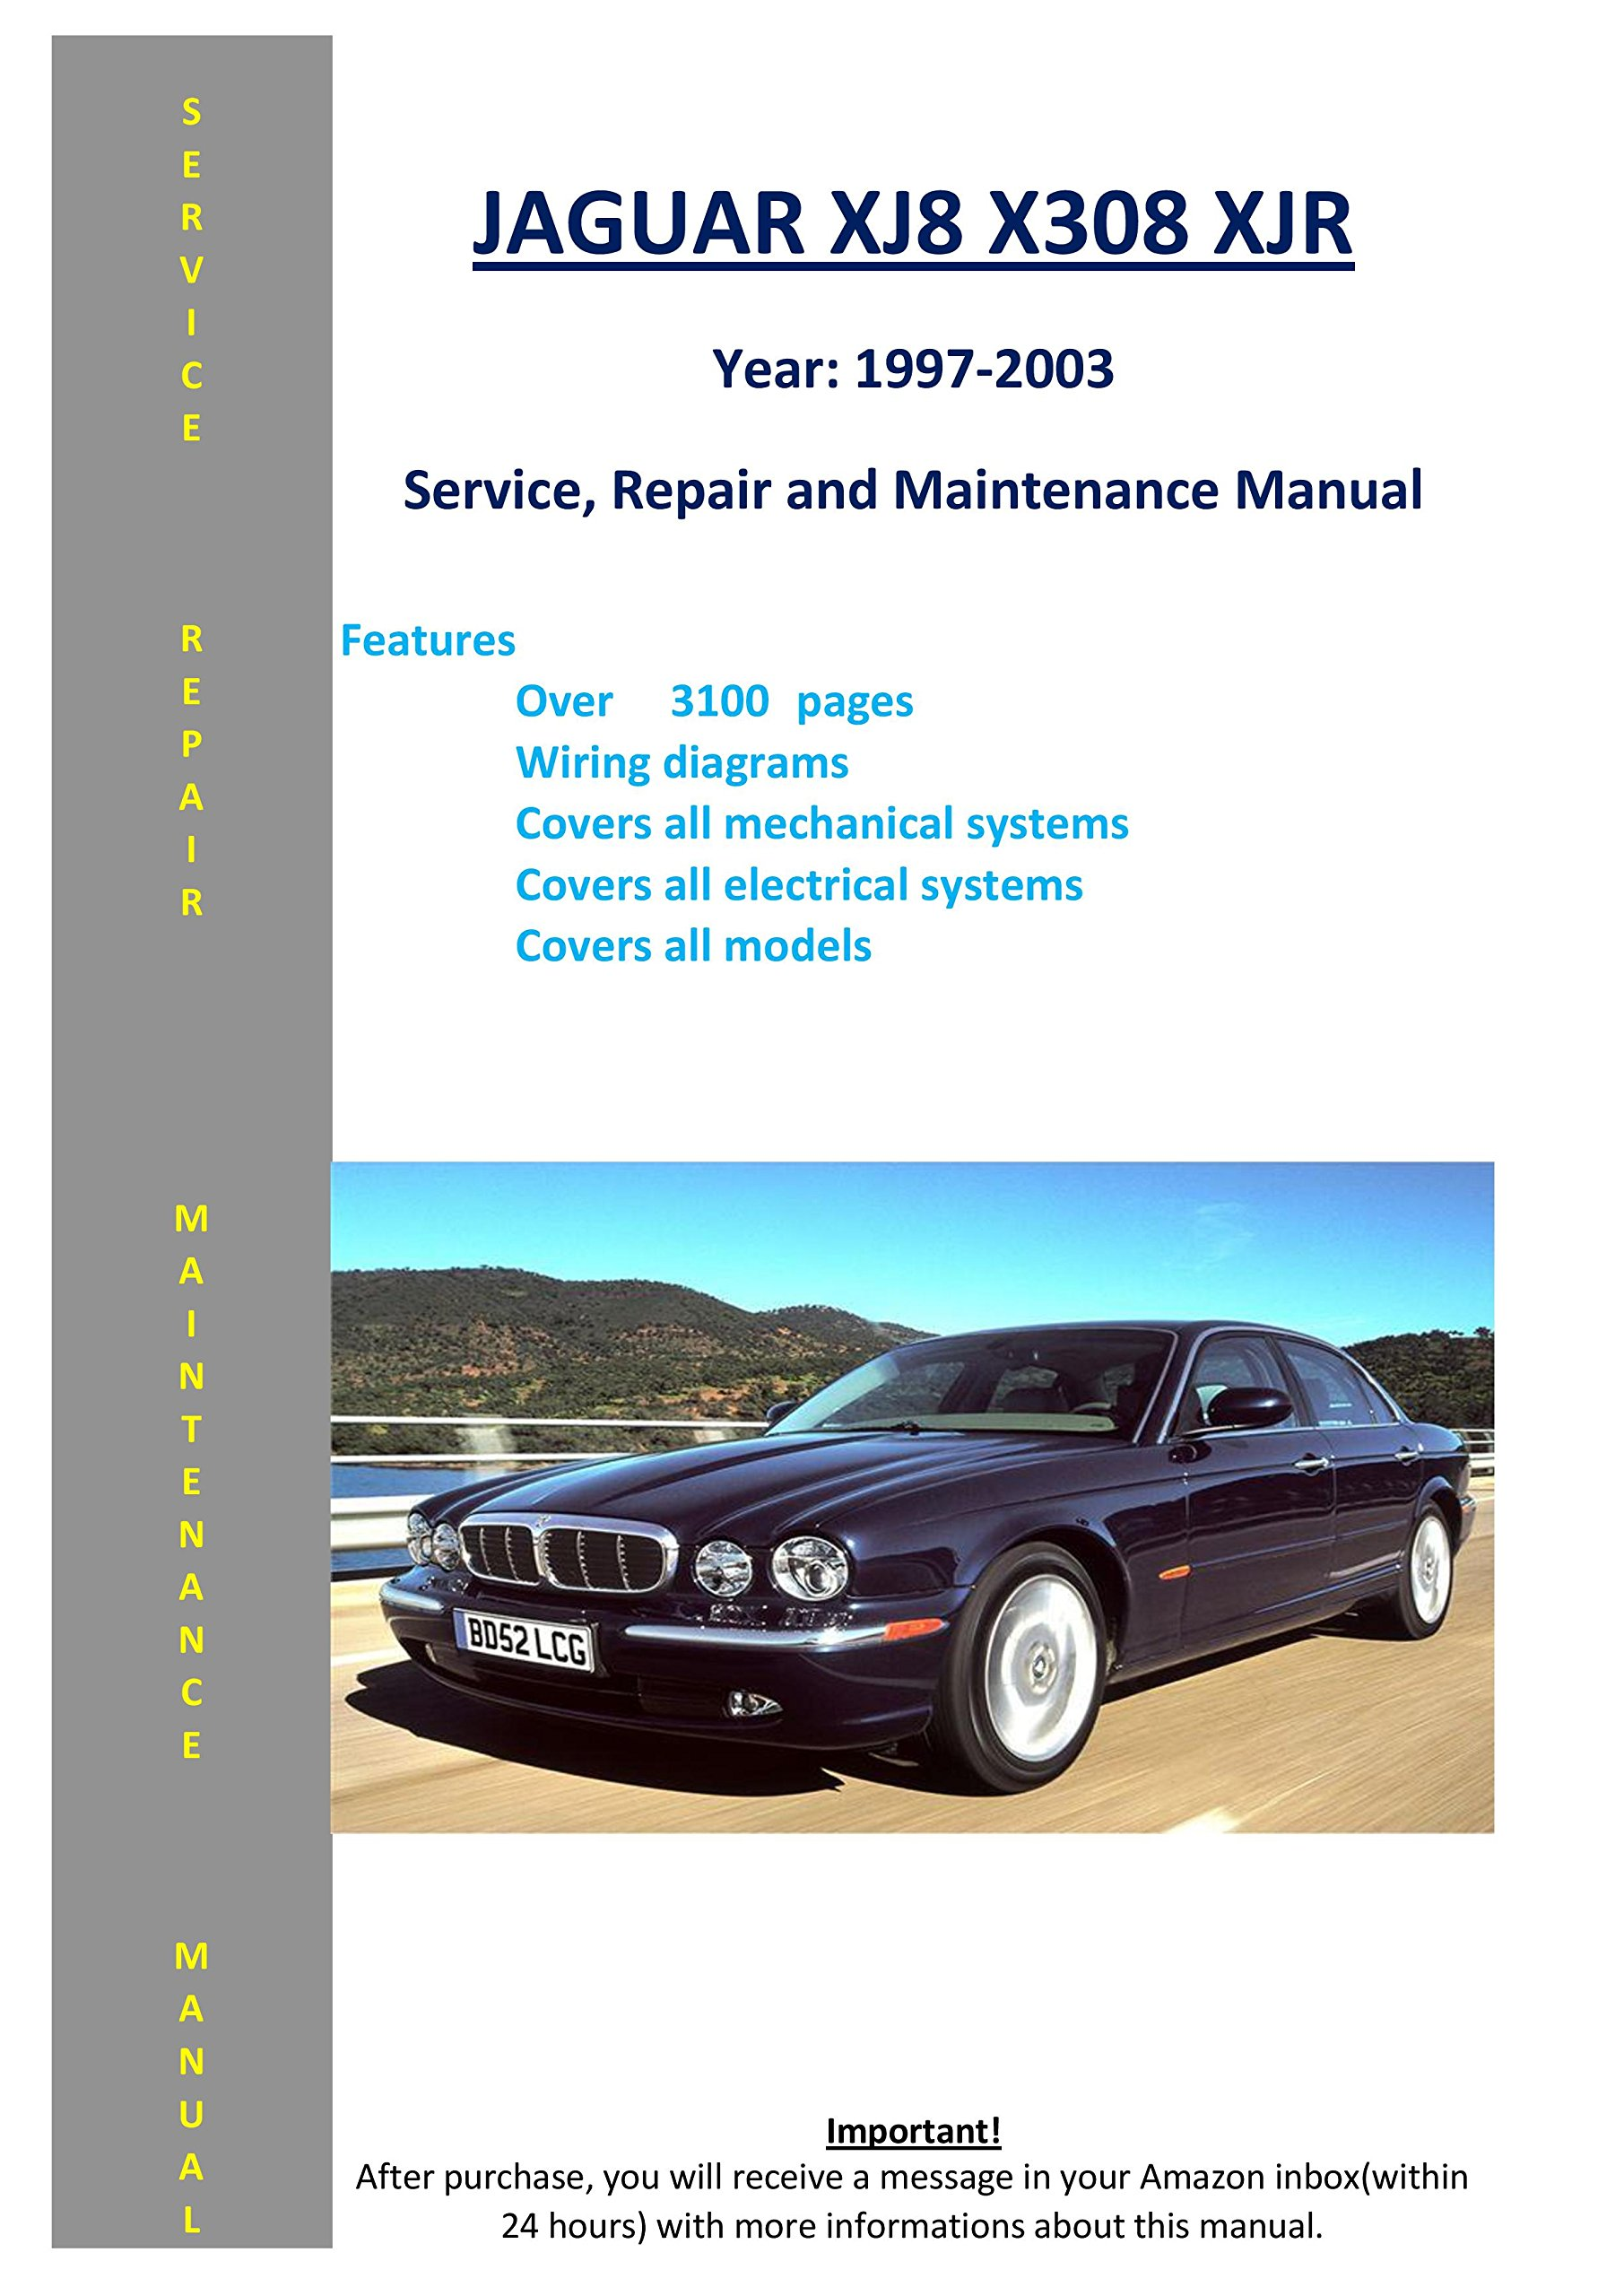 Jaguar Xj8 Xjr X308 From 1997-2003 Service Repair Maintenance Manual:  SoftAuto Manuals: 5217845410030: Amazon.com: Books